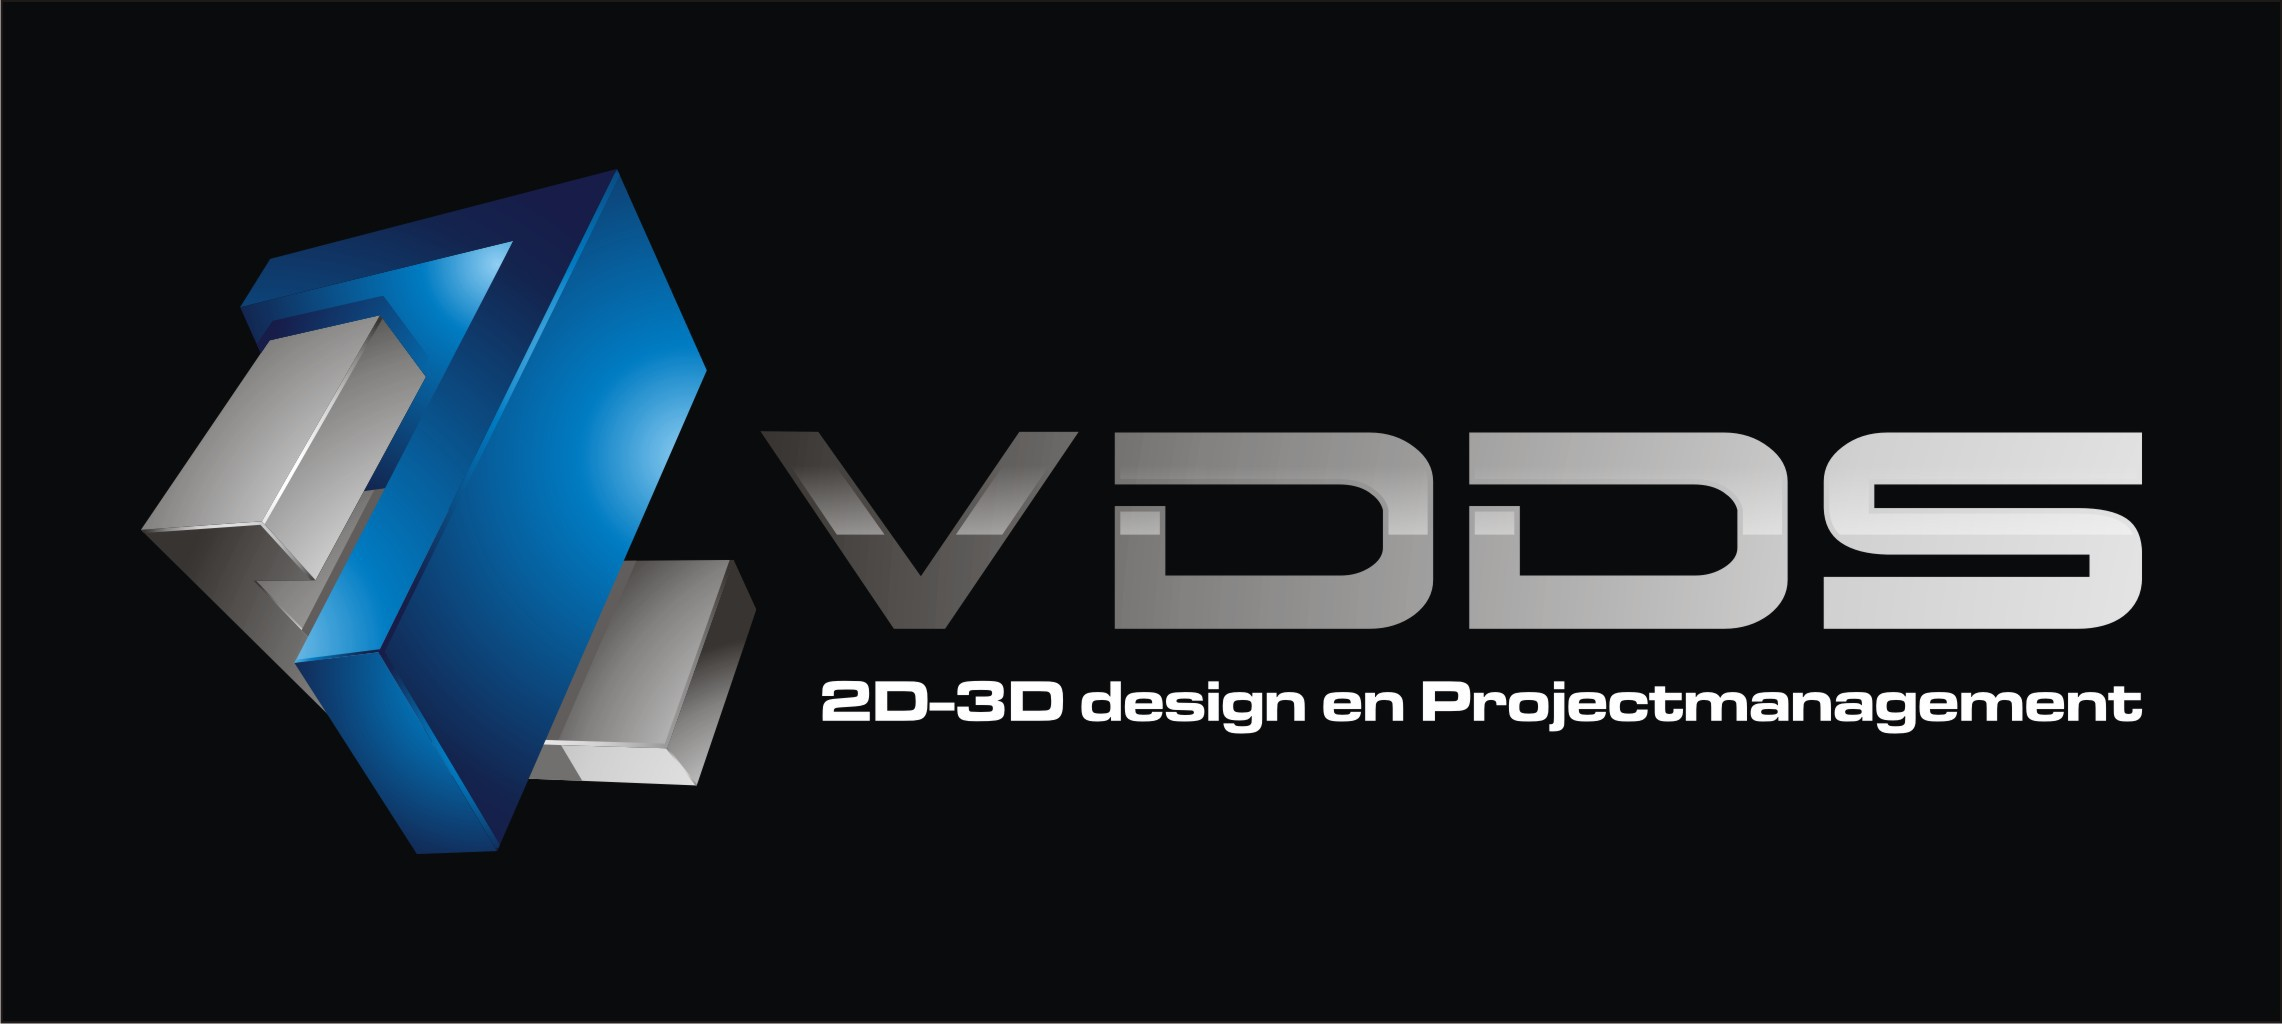 Design a 3D like logo which reflects Technical oriented and long term co-operation